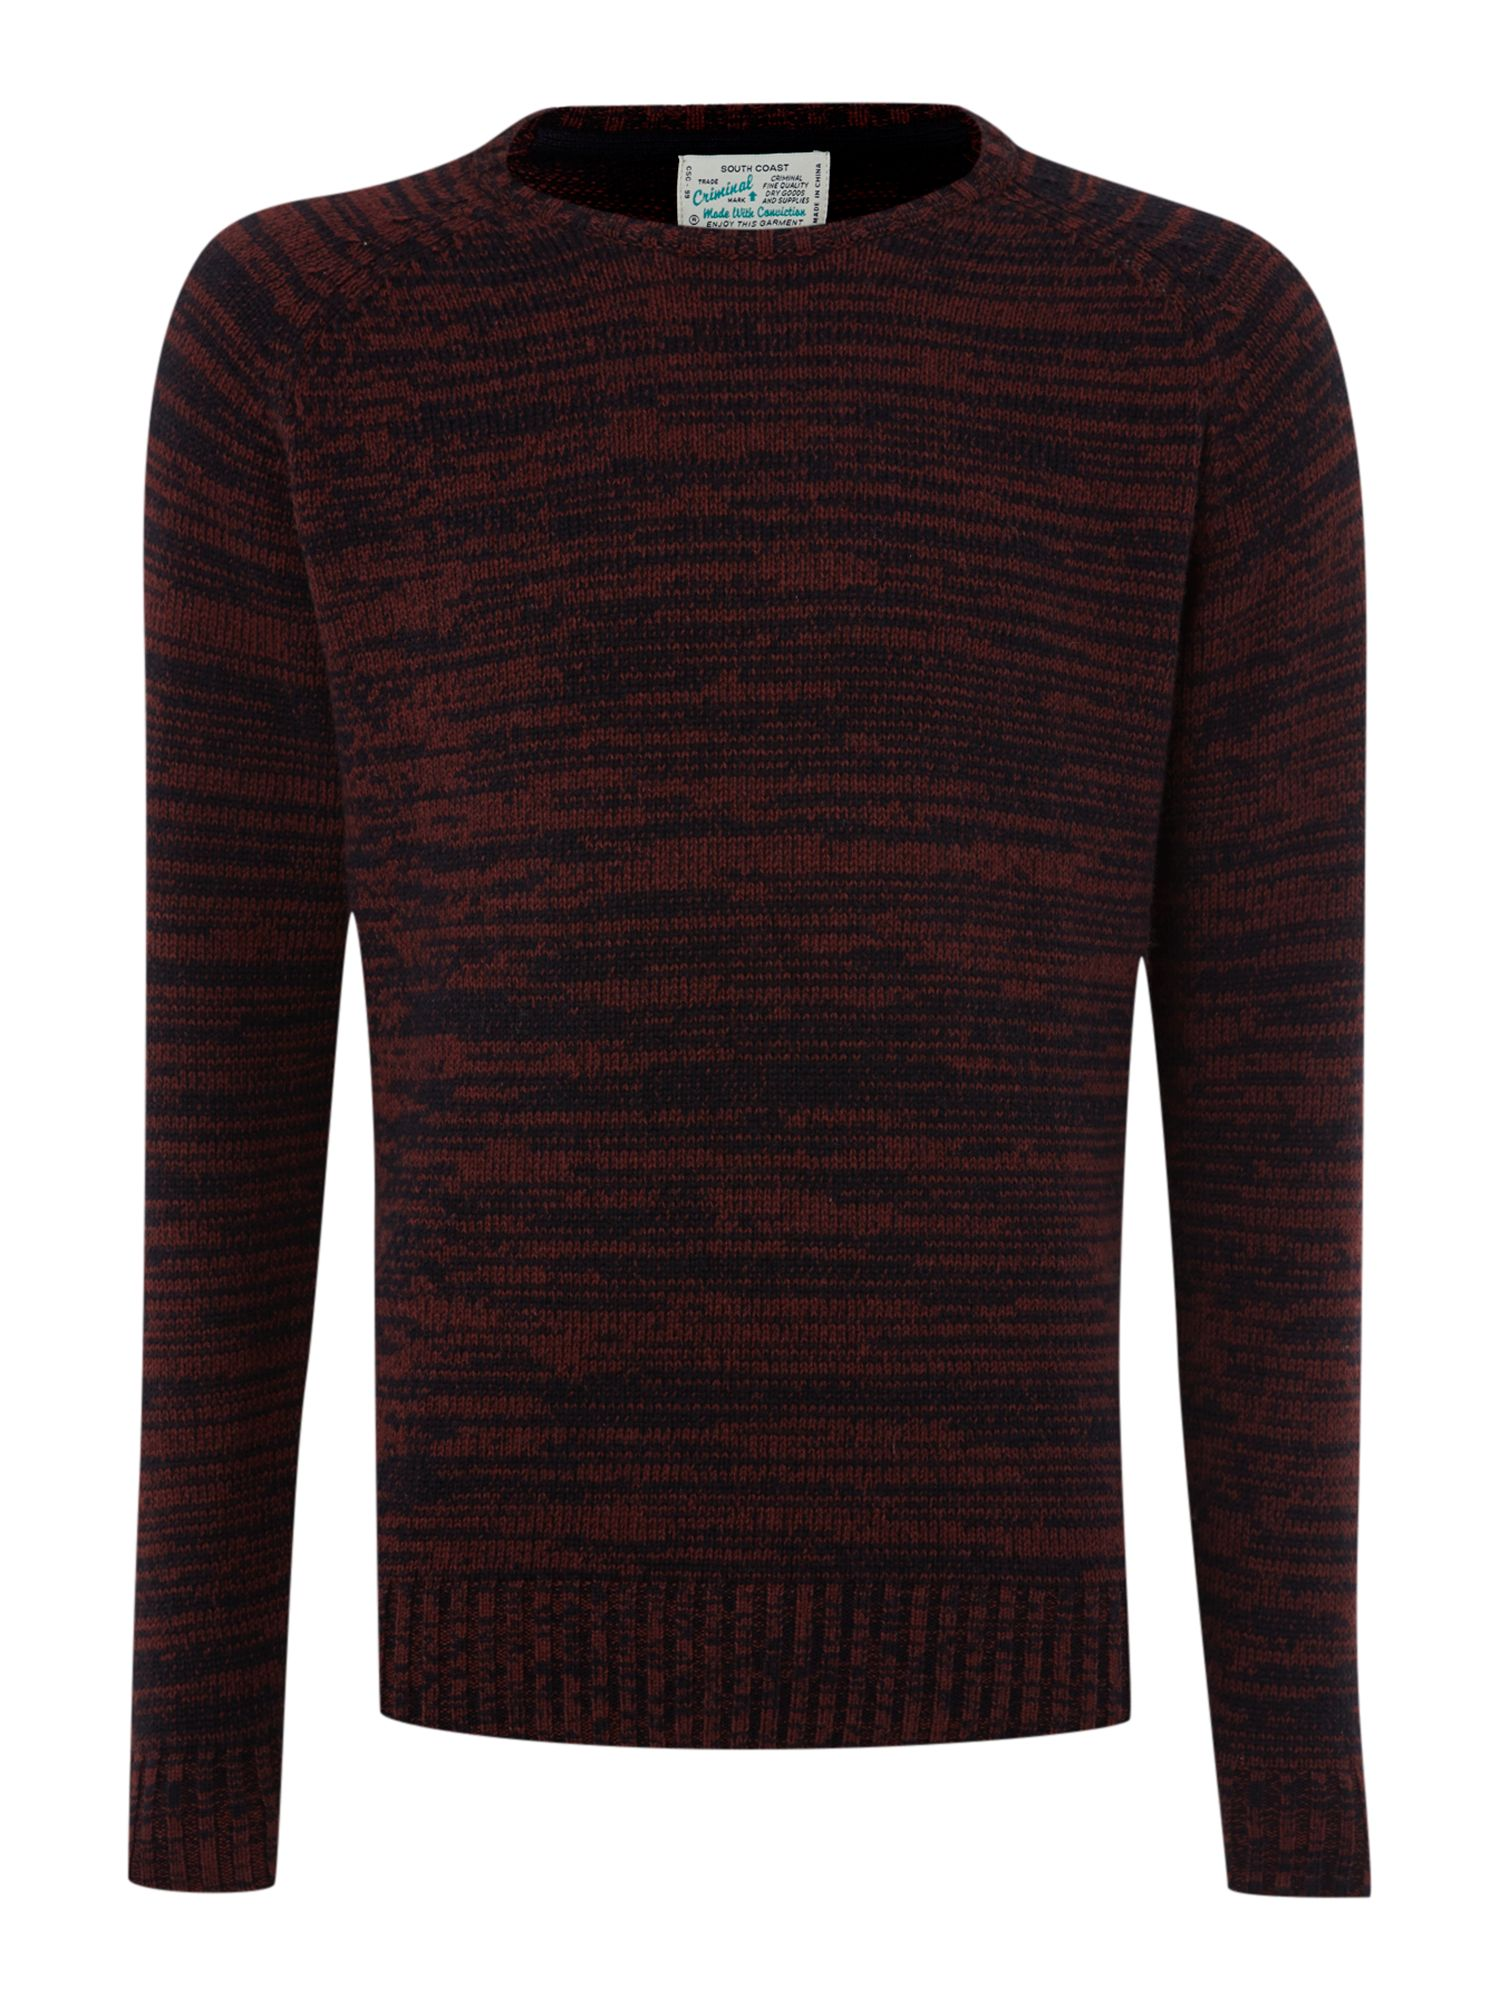 Porthleven striped jumper